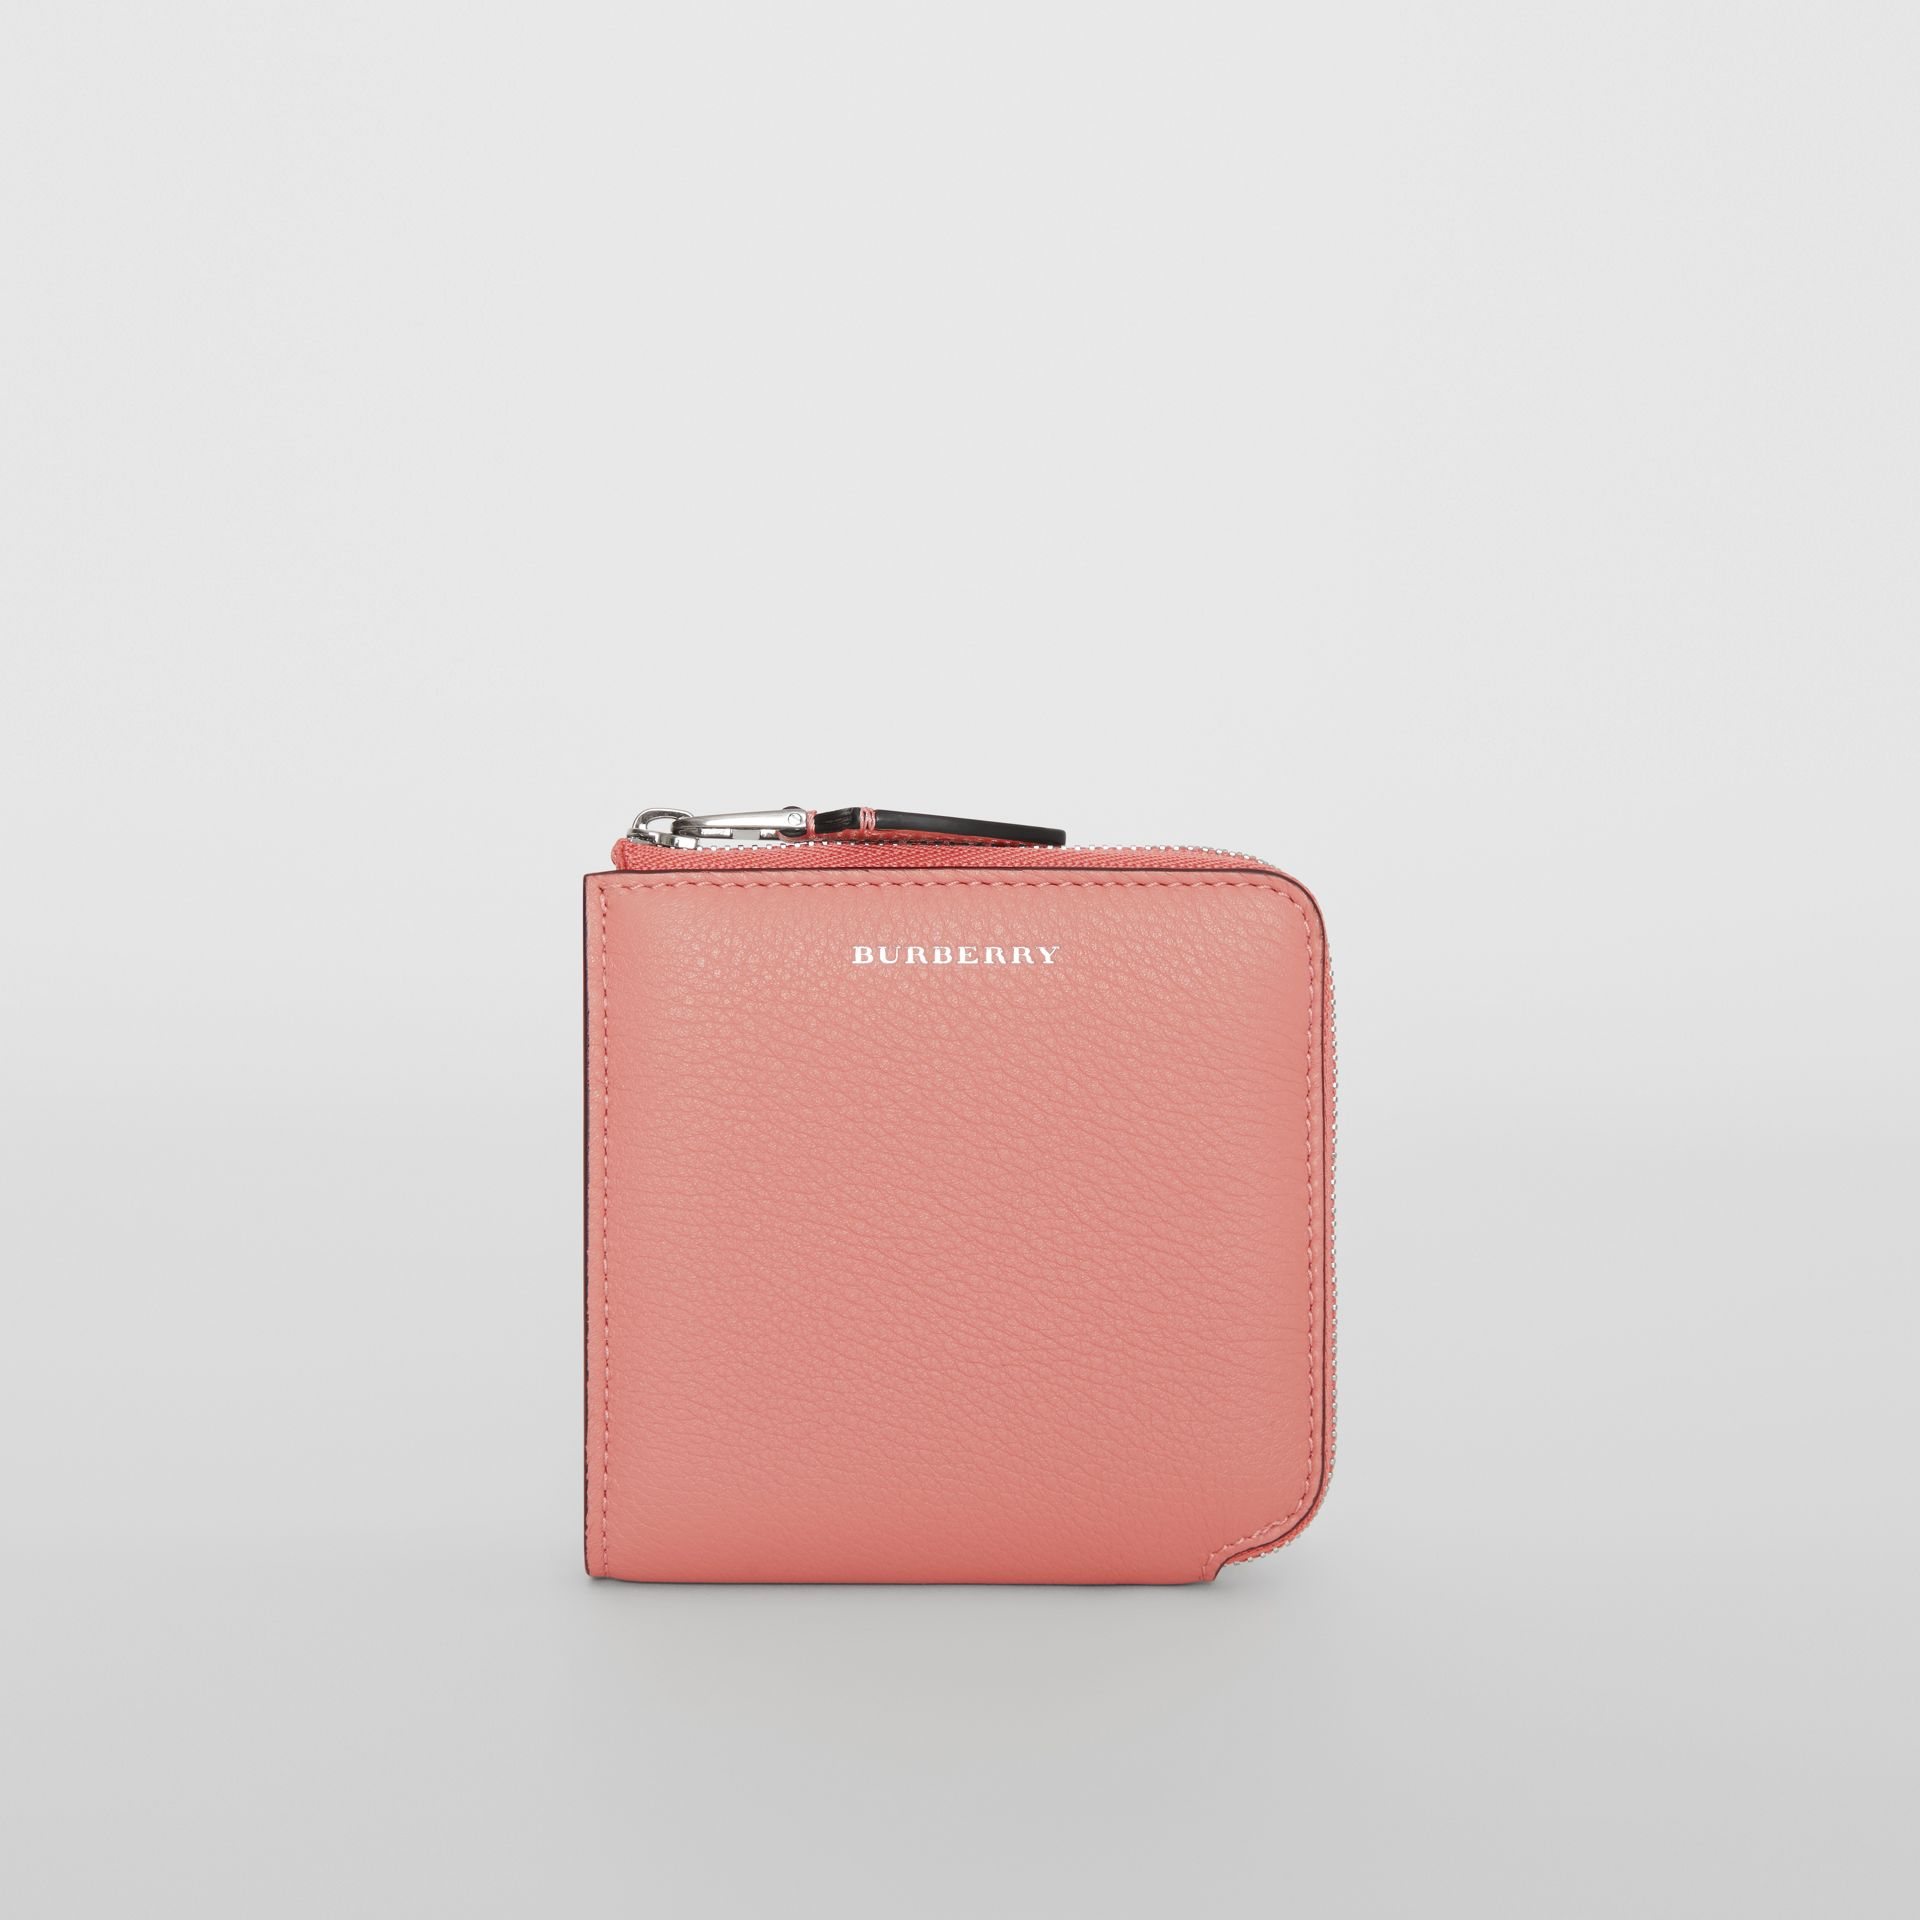 Grainy Leather Square Ziparound Wallet in Dusty Rose - Women | Burberry - gallery image 3